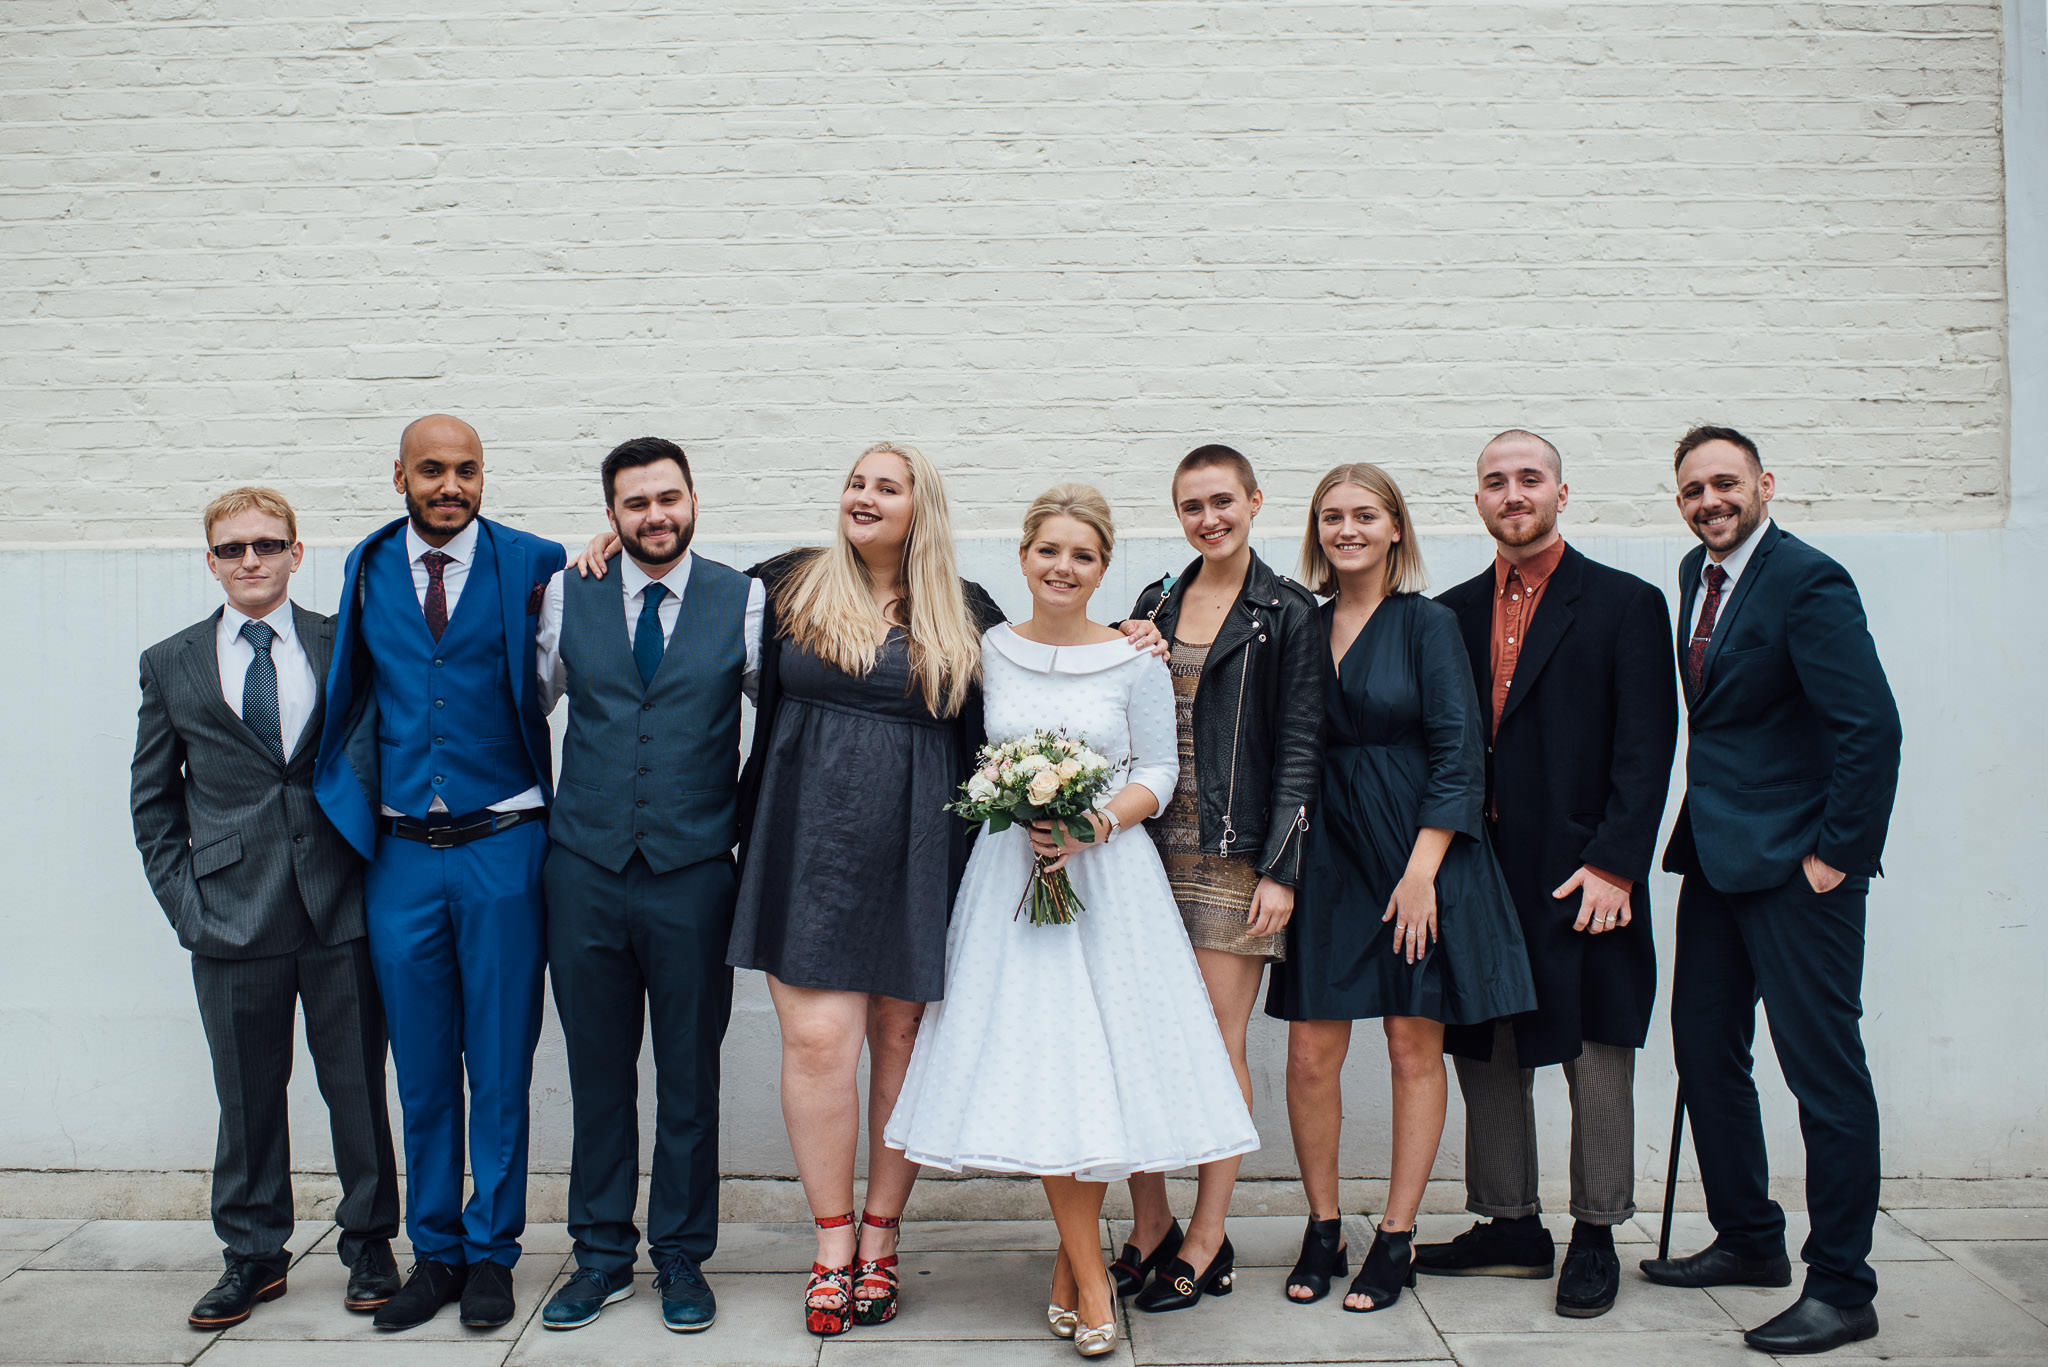 Bride and friends in stoke newington town hall wedding by creative and alternative london wedding photographer the shannons photography